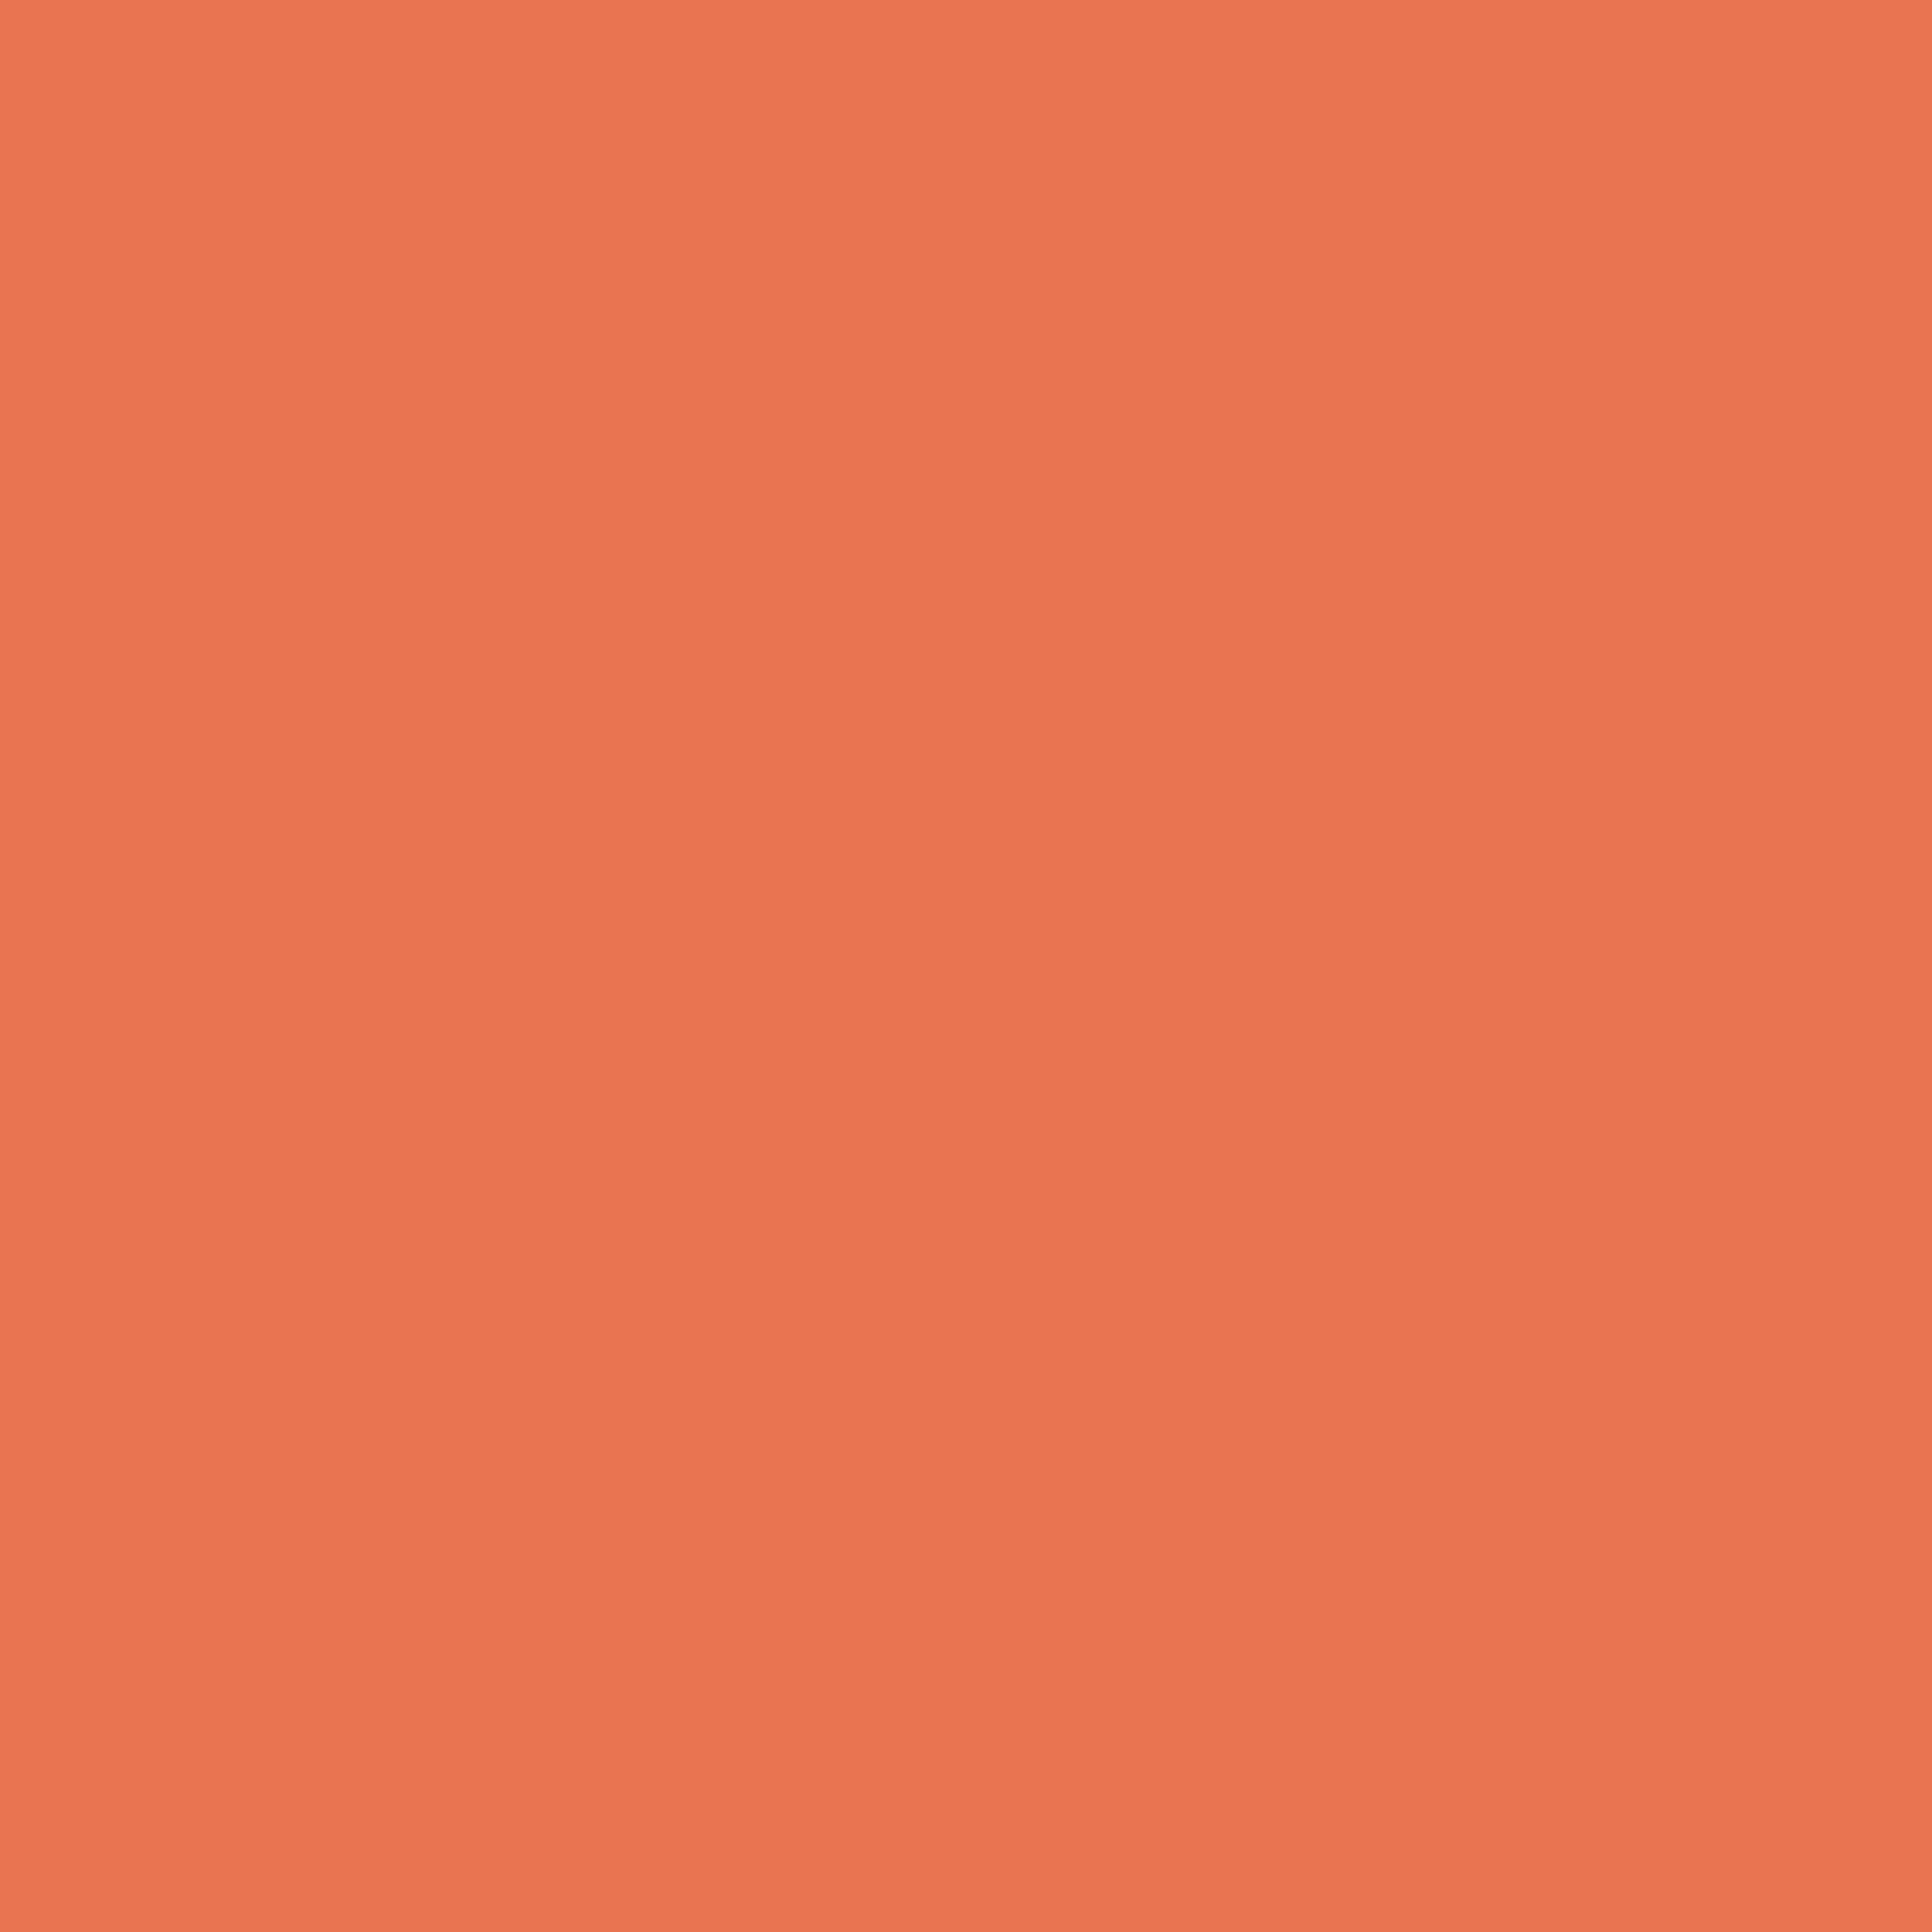 3600x3600 Burnt Sienna Solid Color Background